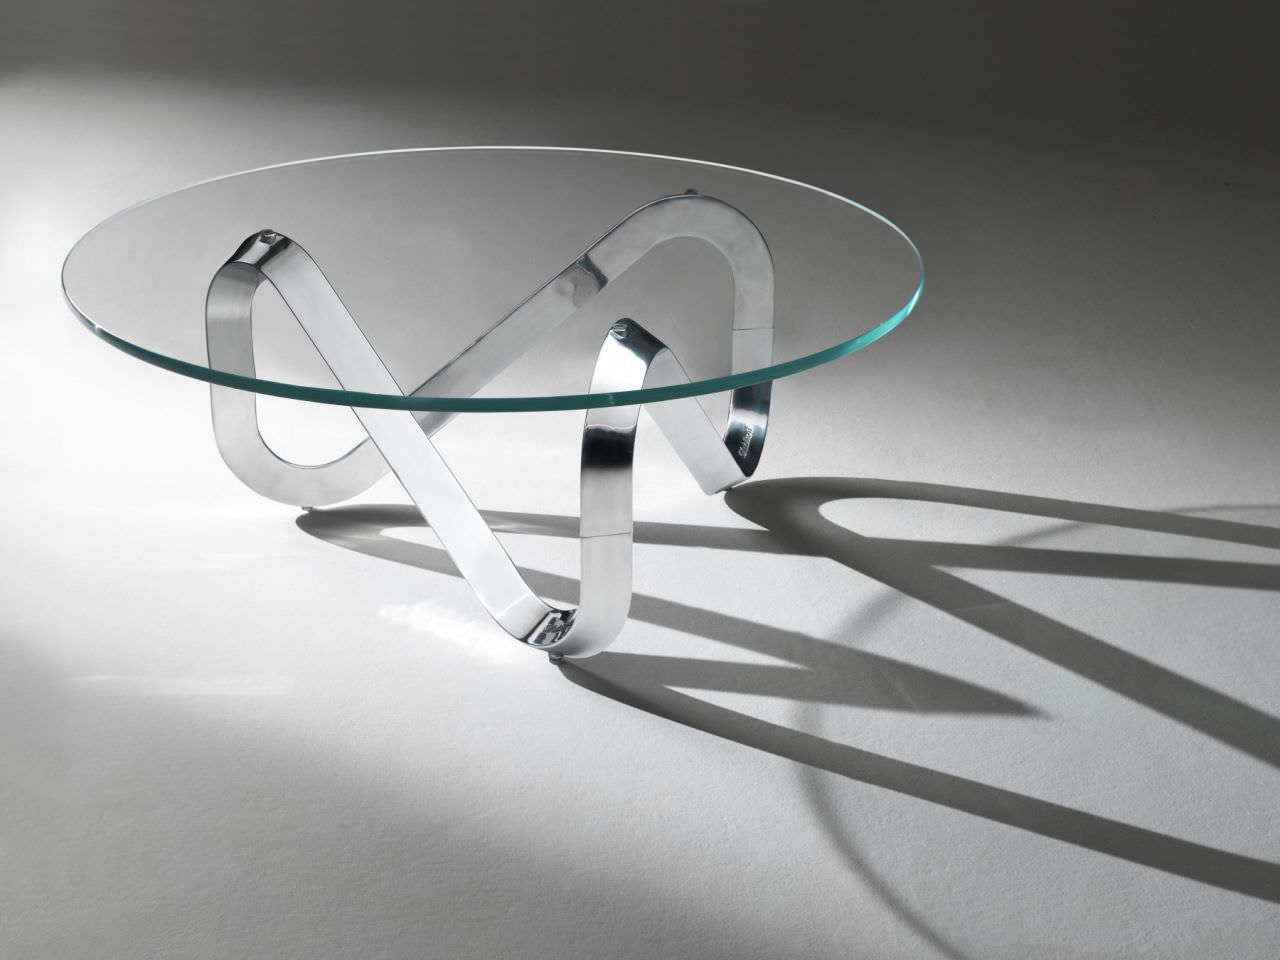 Table basse ronde en verre design id es de d coration for Table basse verre design